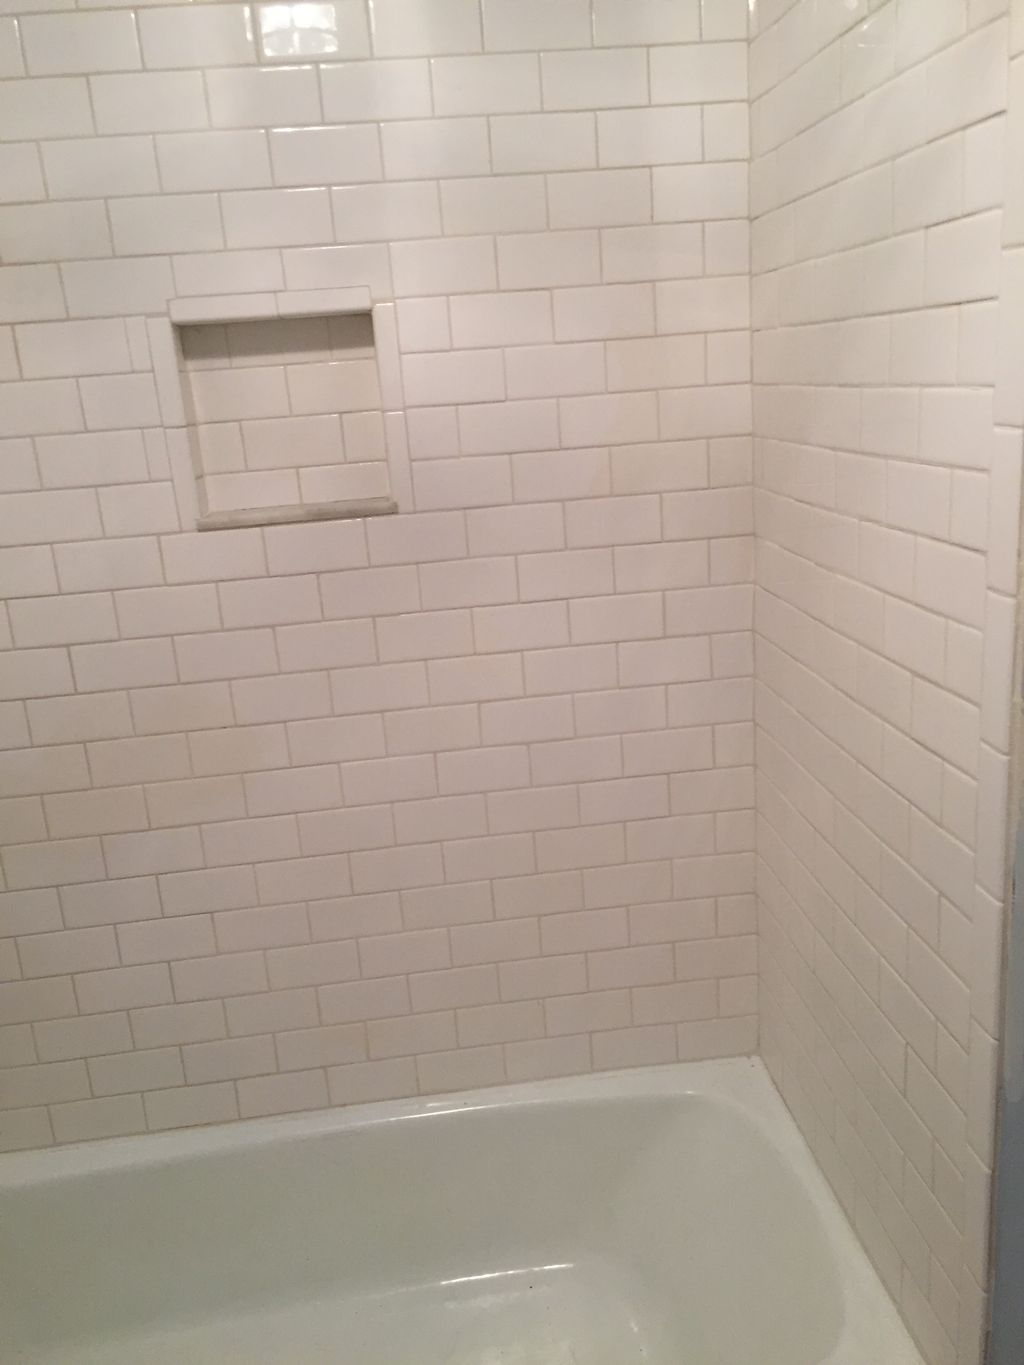 Remove existing tile and install new tiles